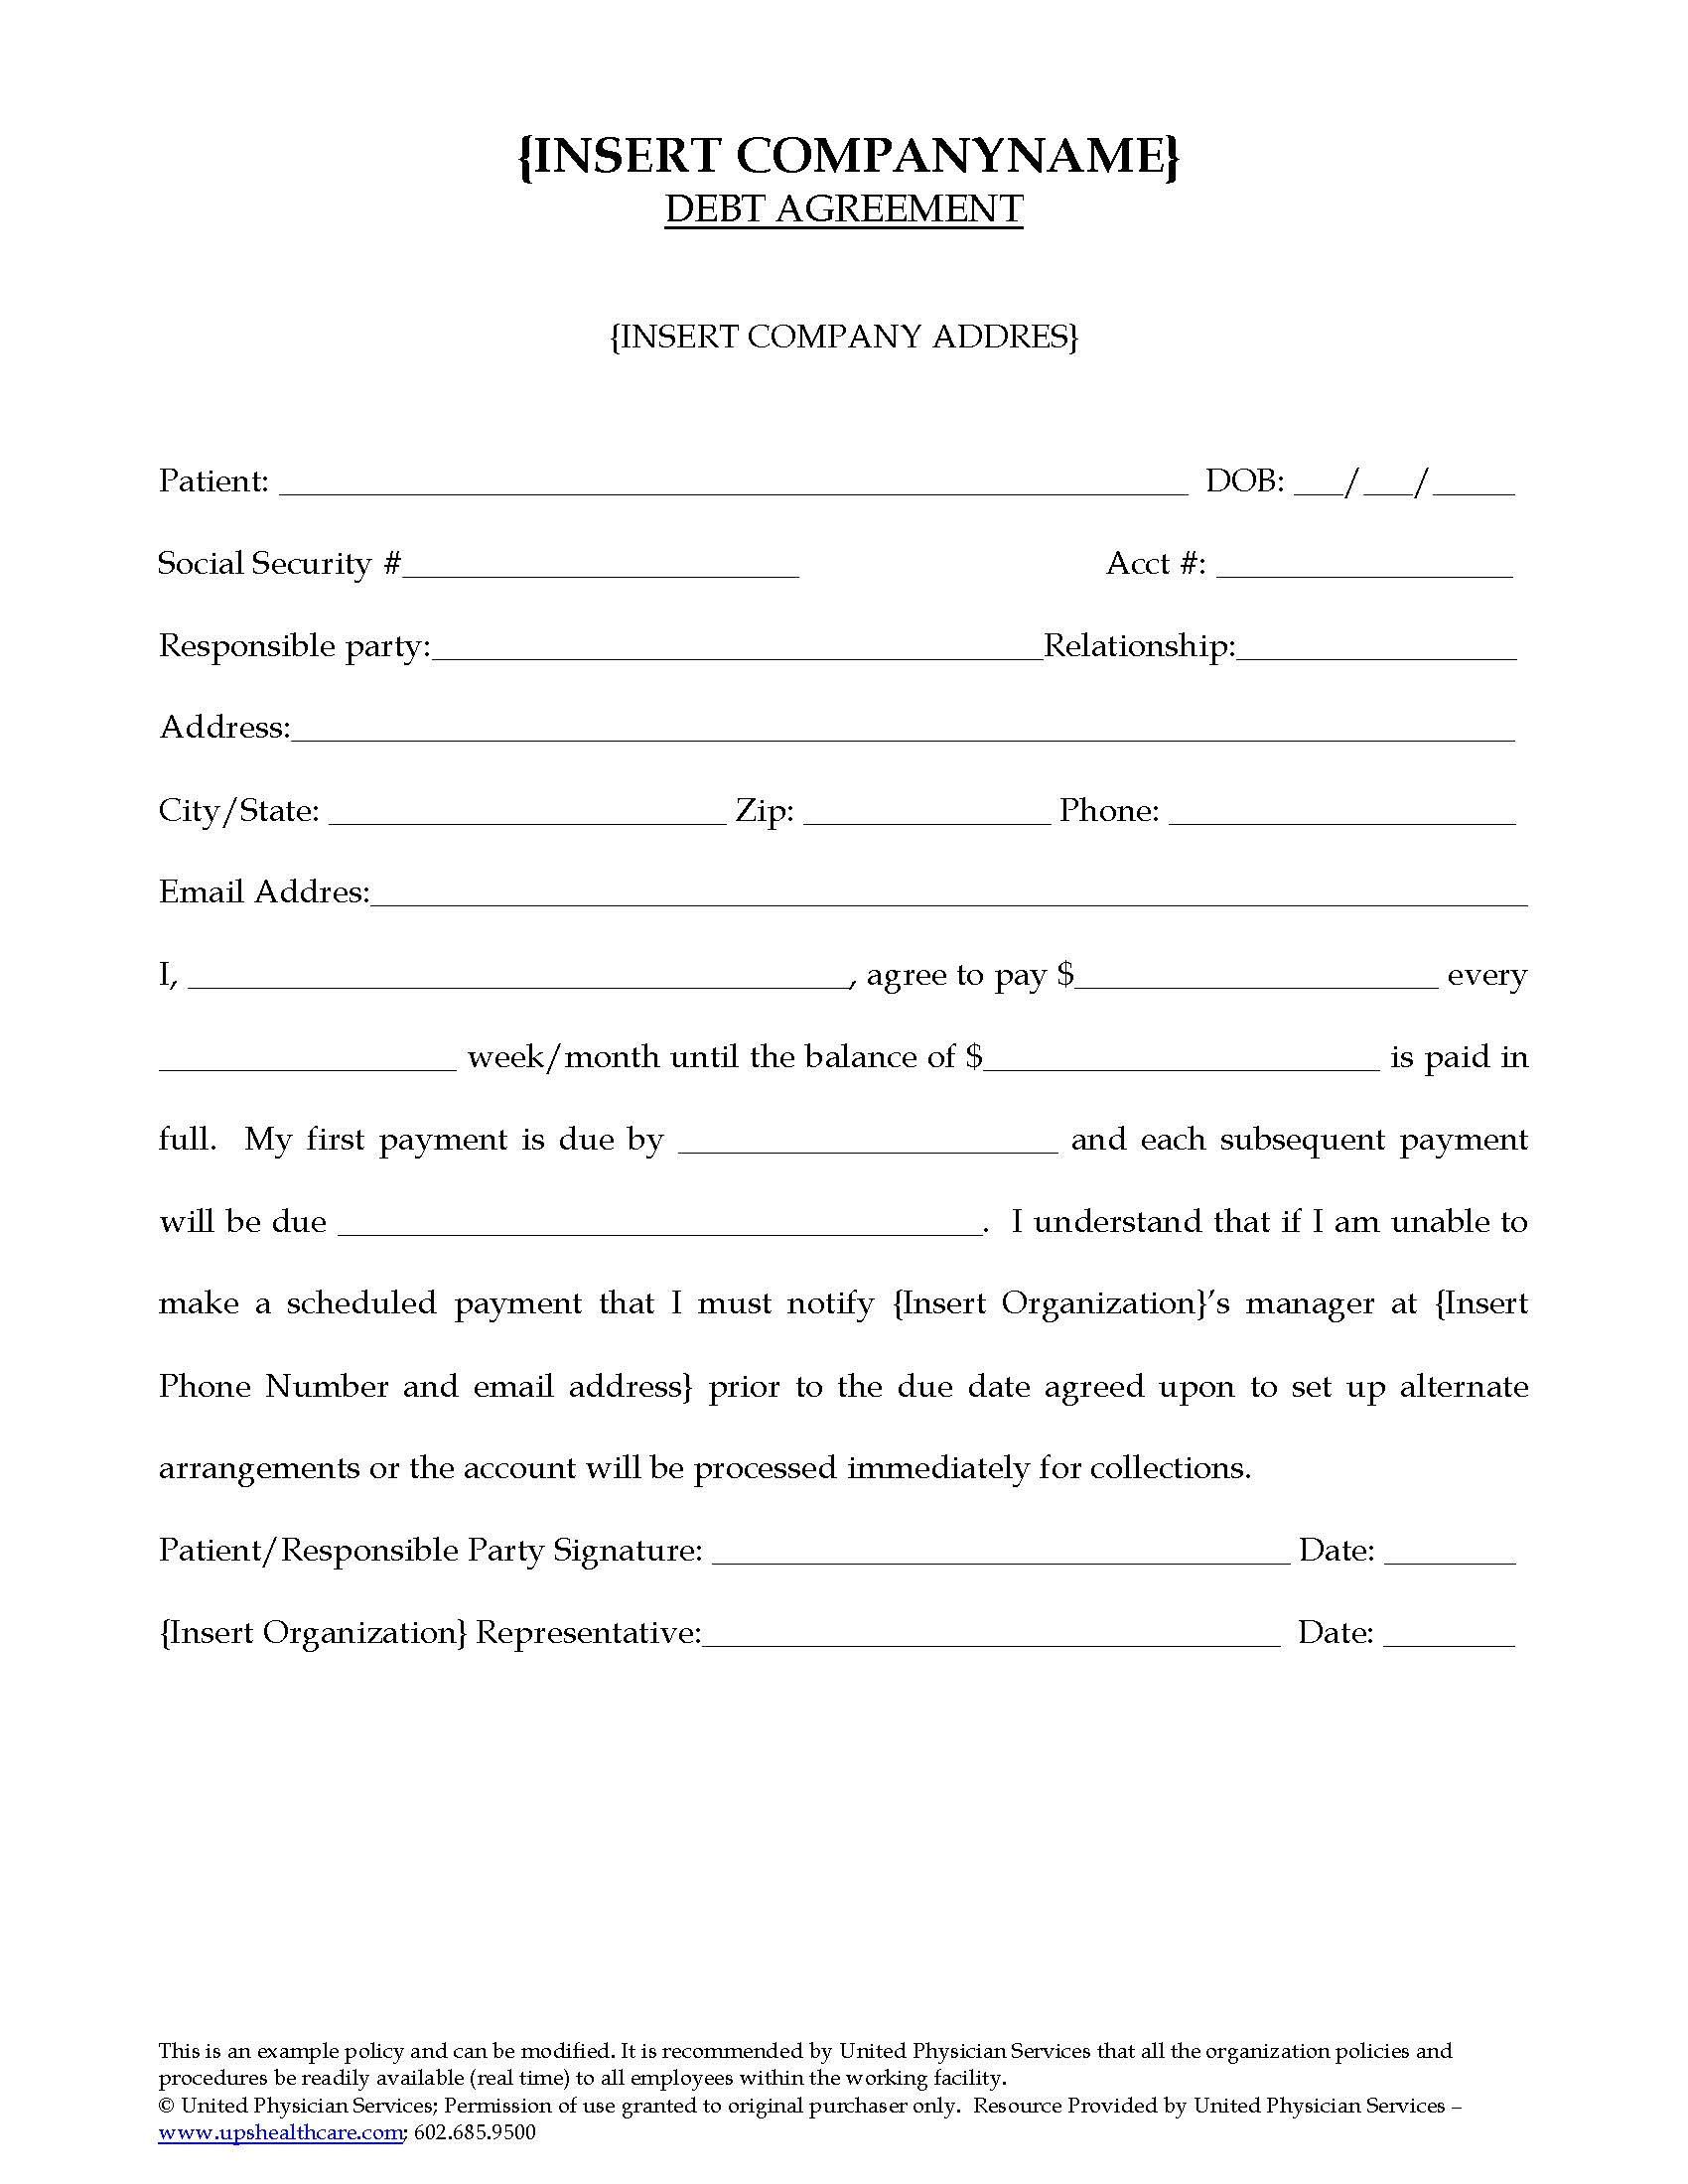 Debt Agreement  United Physician Services For Debt Agreement Templates